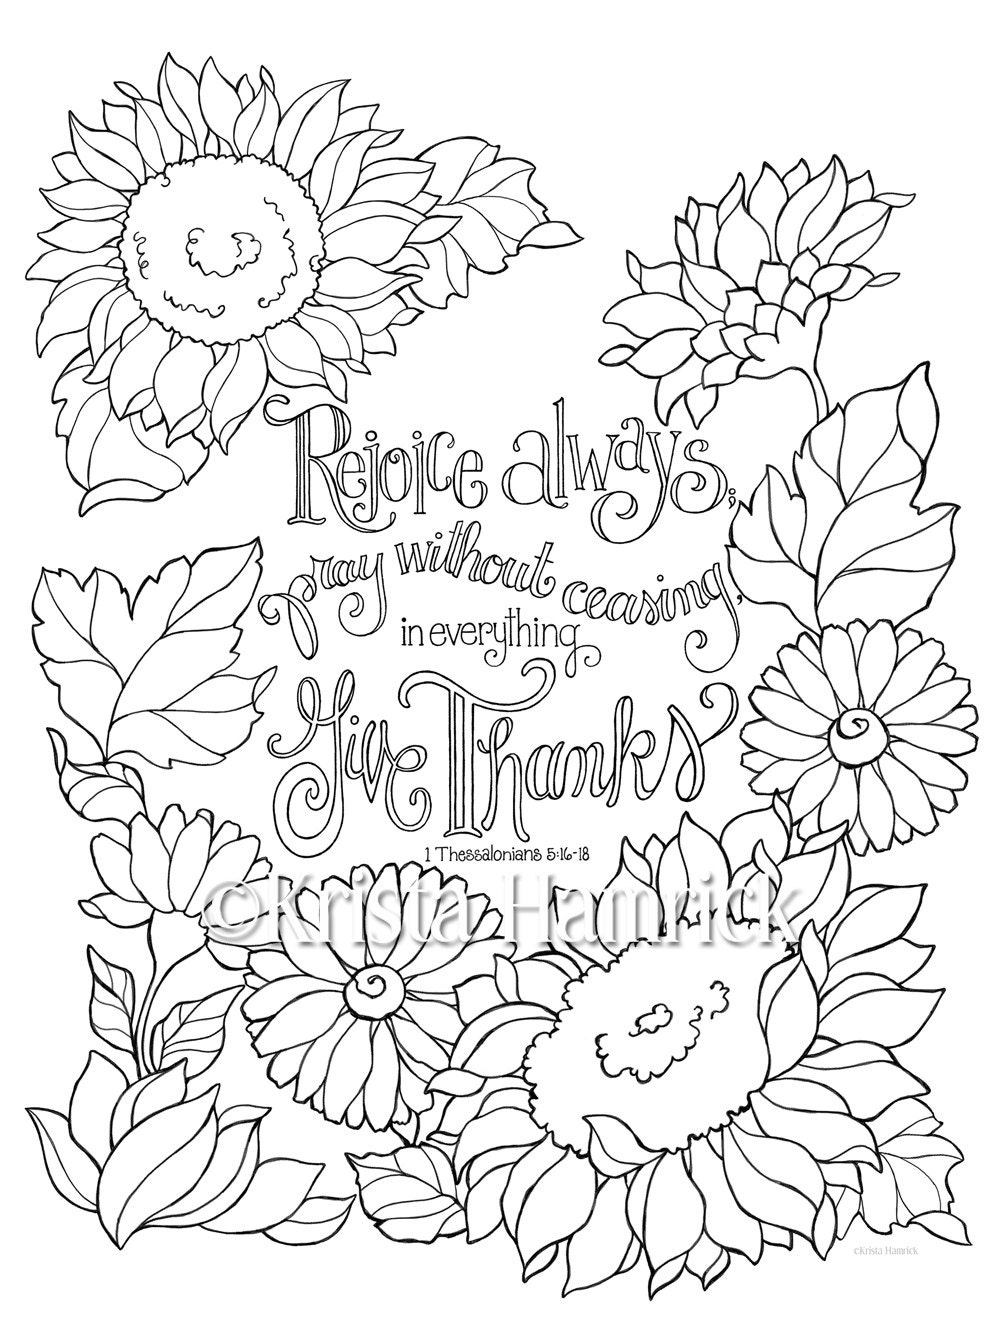 Rejoice Always coloring page in